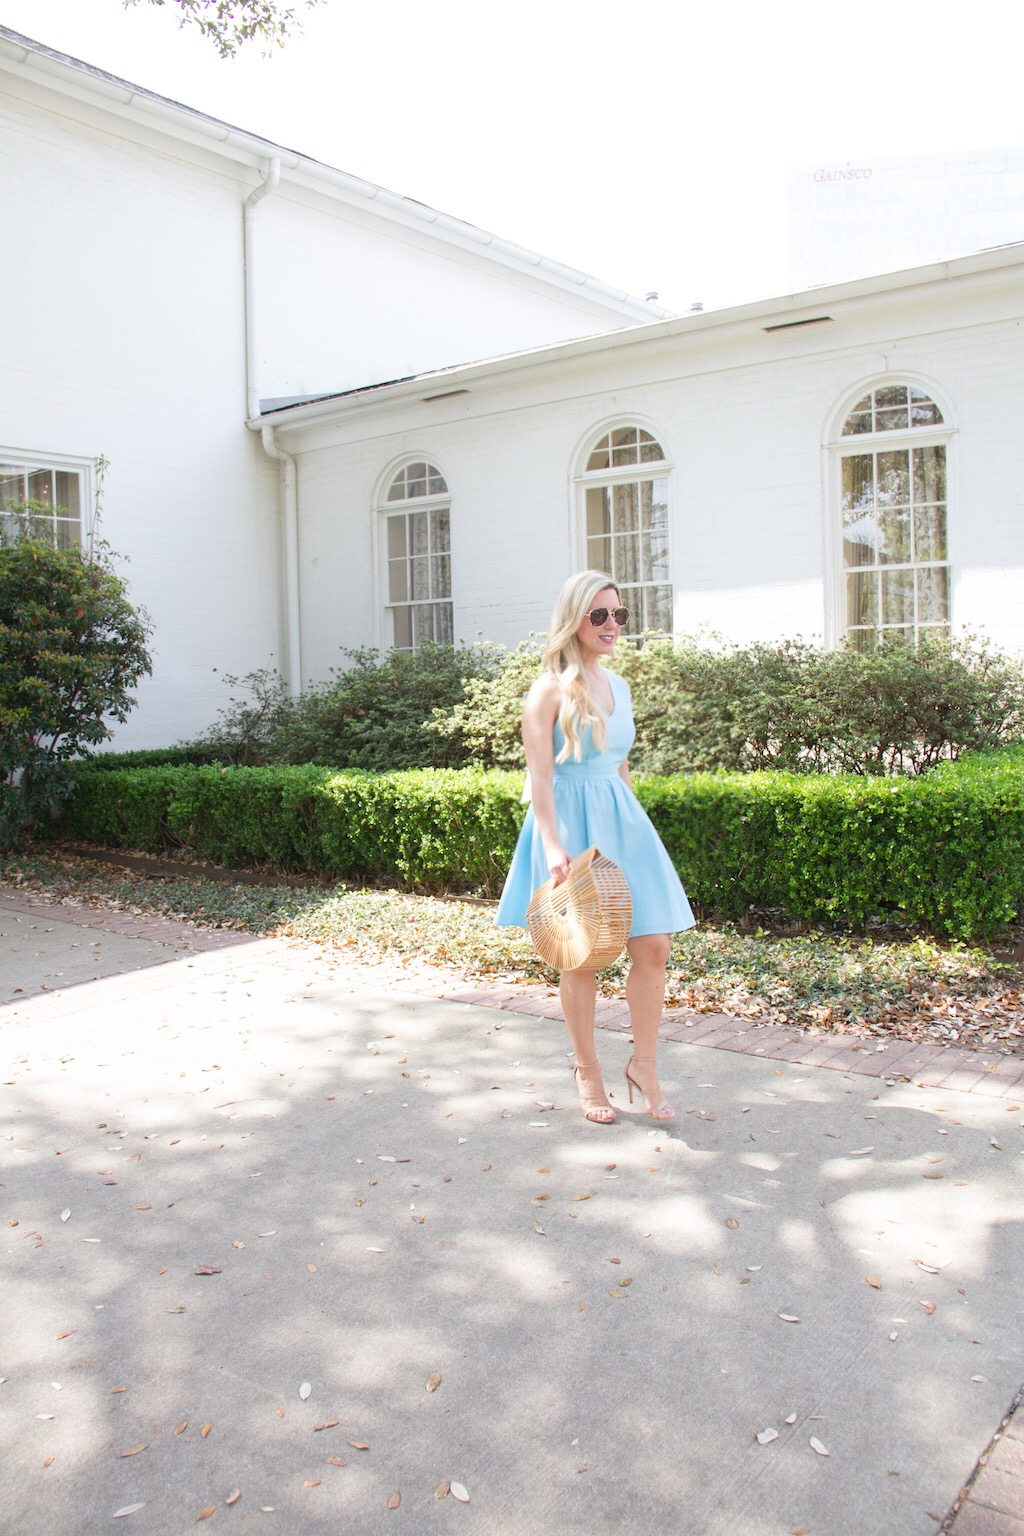 Easter Dress | The Darling Petite Diva